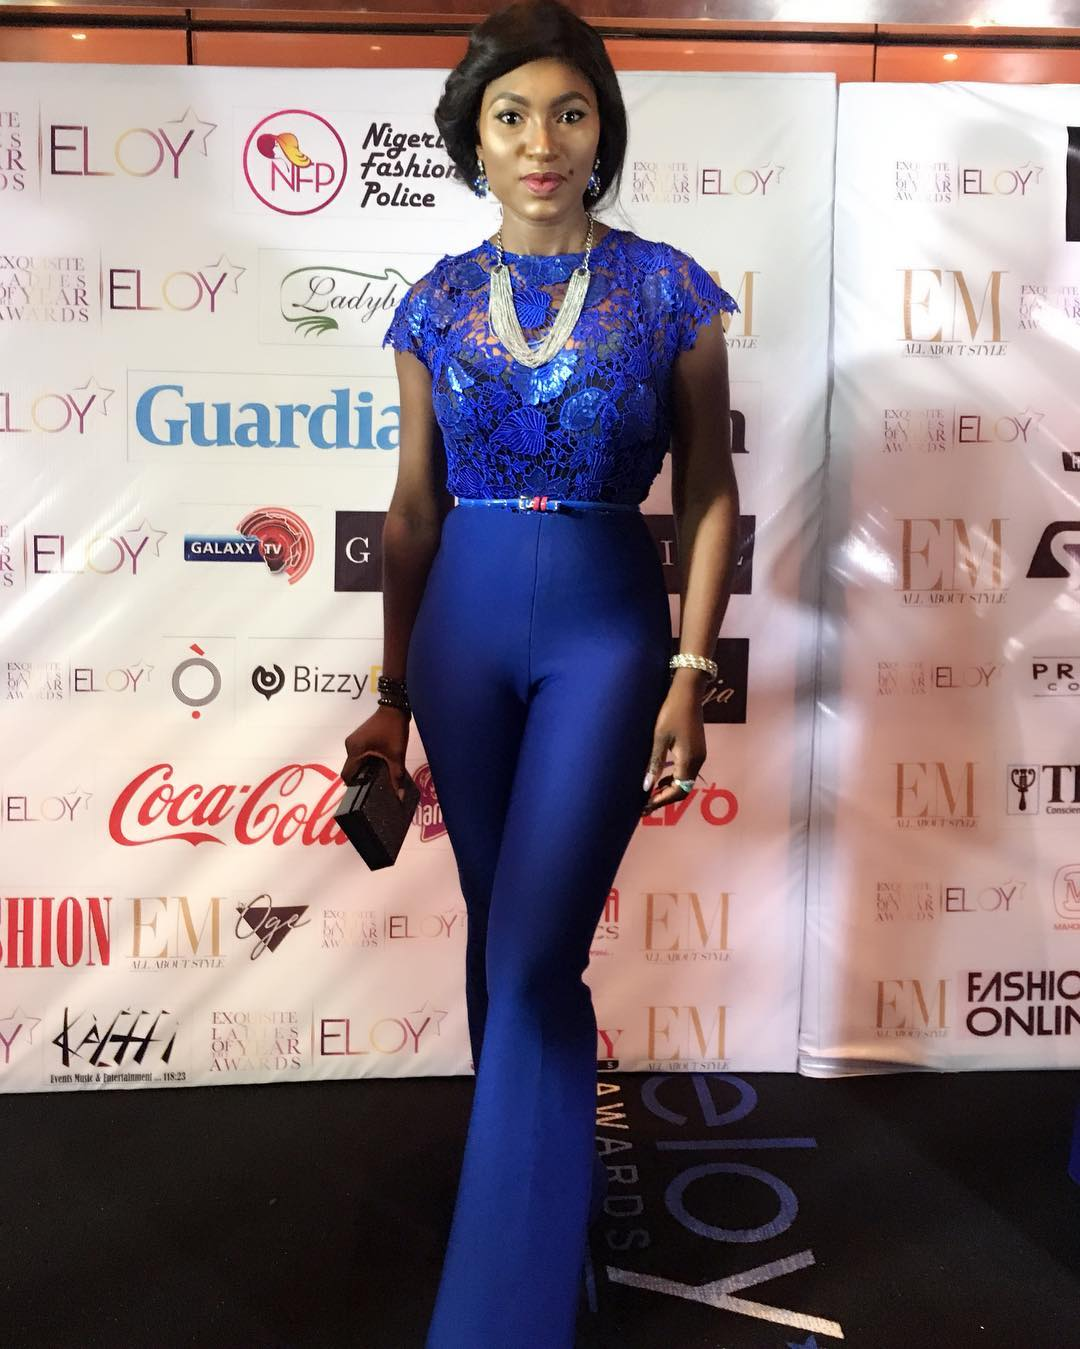 Ufuoma McDermott at Eloy Awards 2017